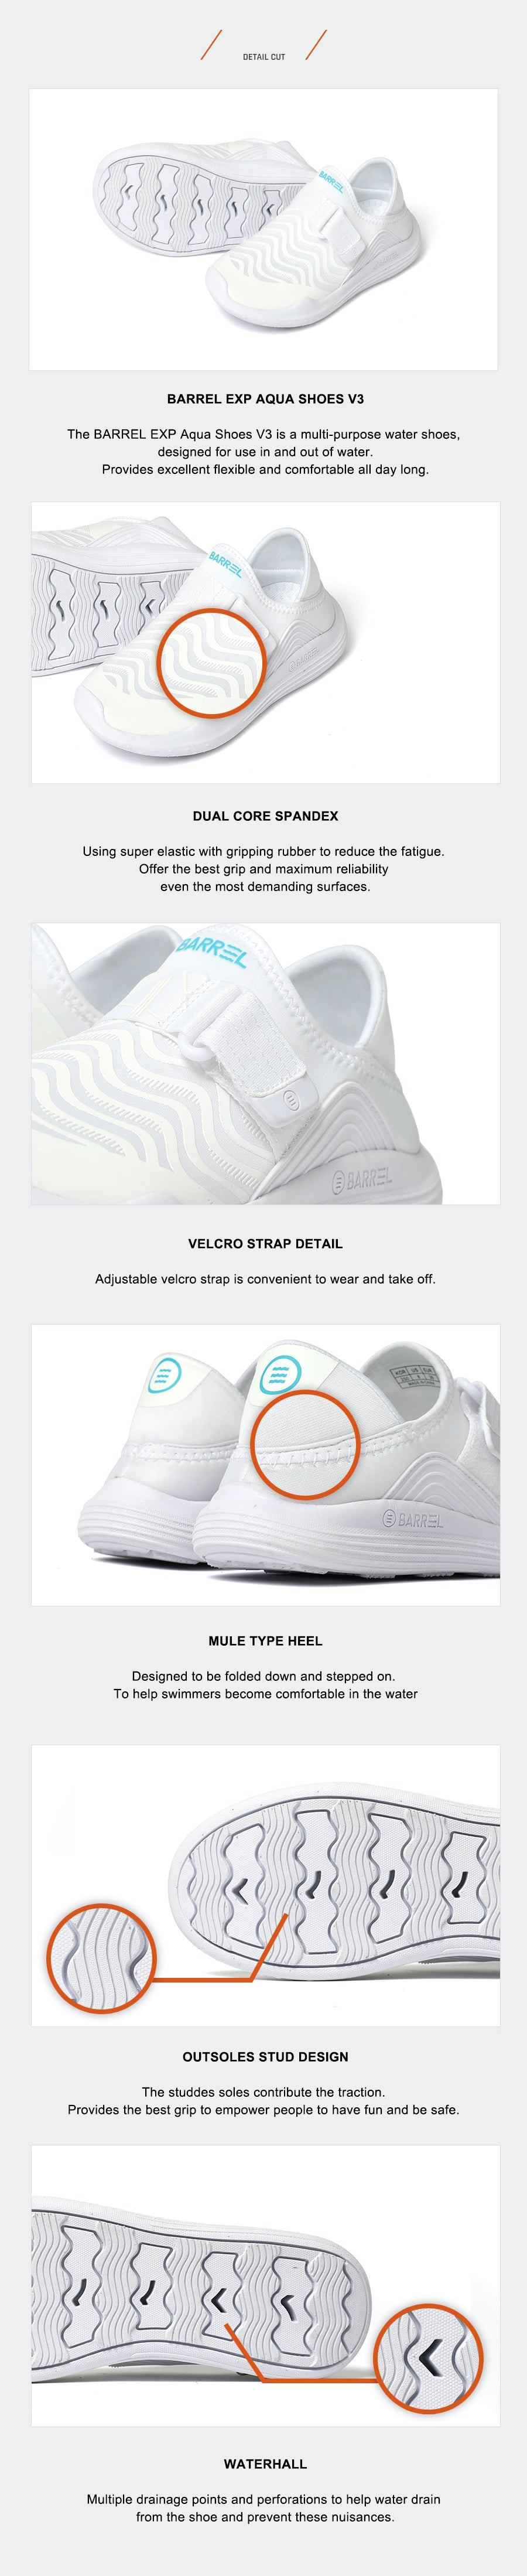 Barrel Kids EXP Aqua Shoes V3-WHITE_image